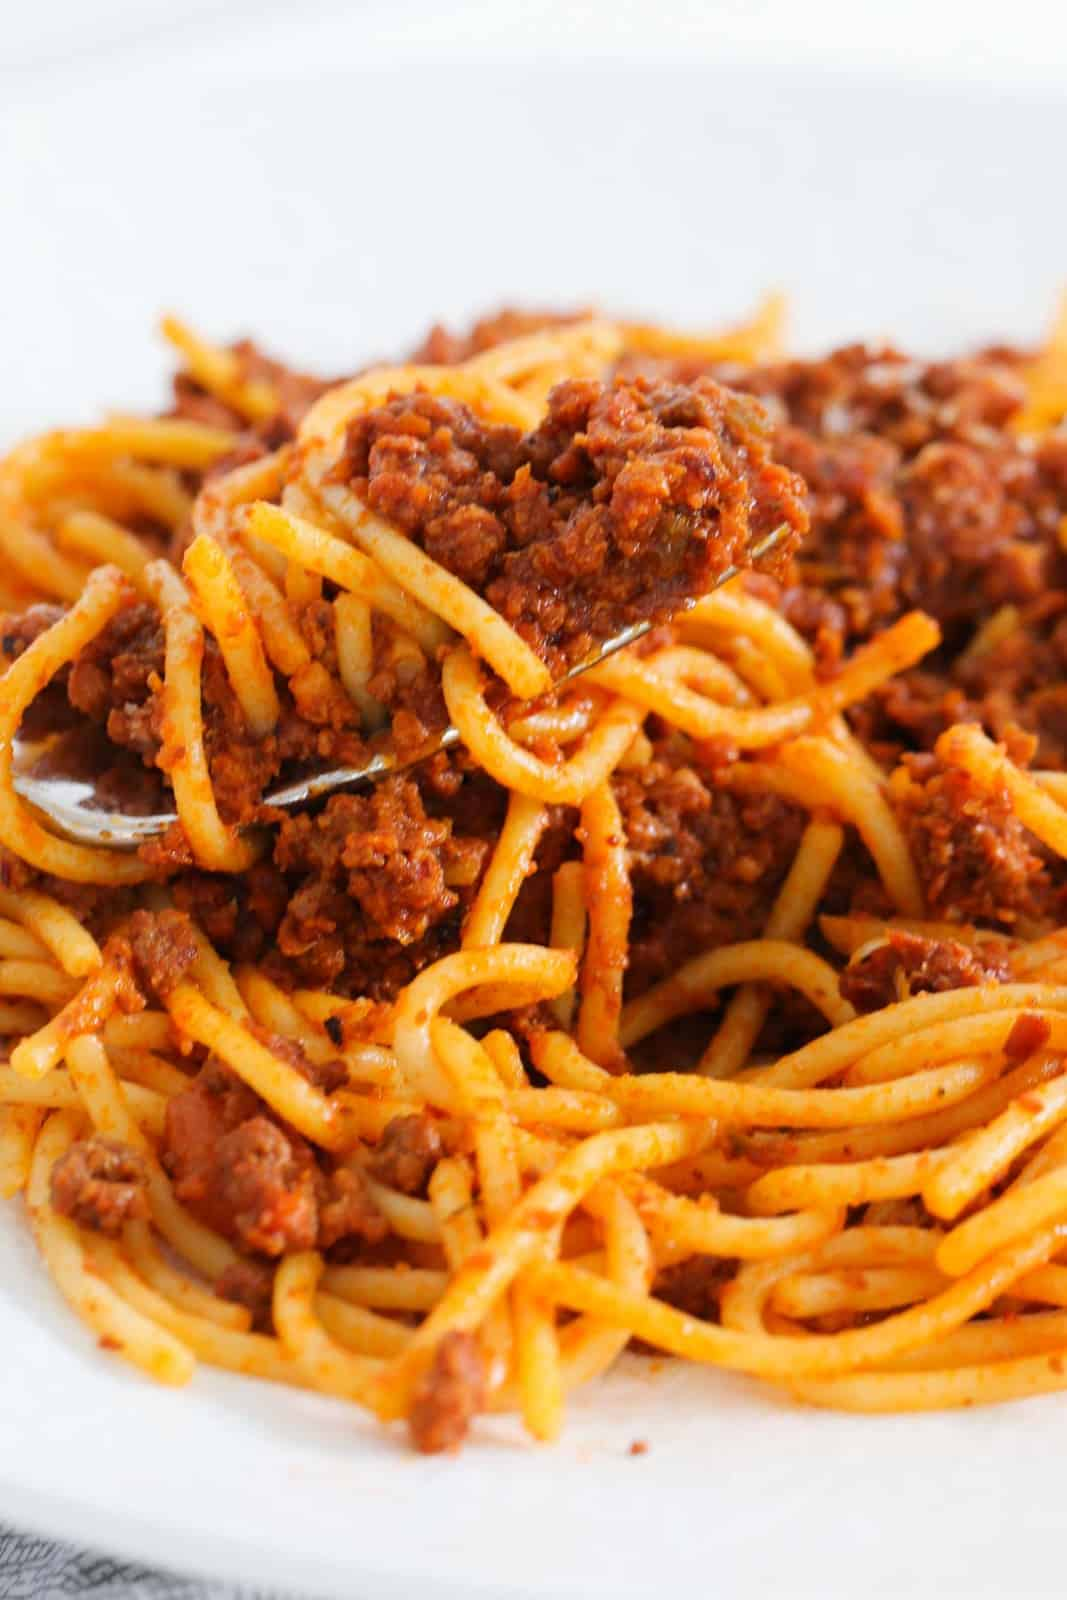 A bowl of pasta coated in a rich meat and tomato sauce.